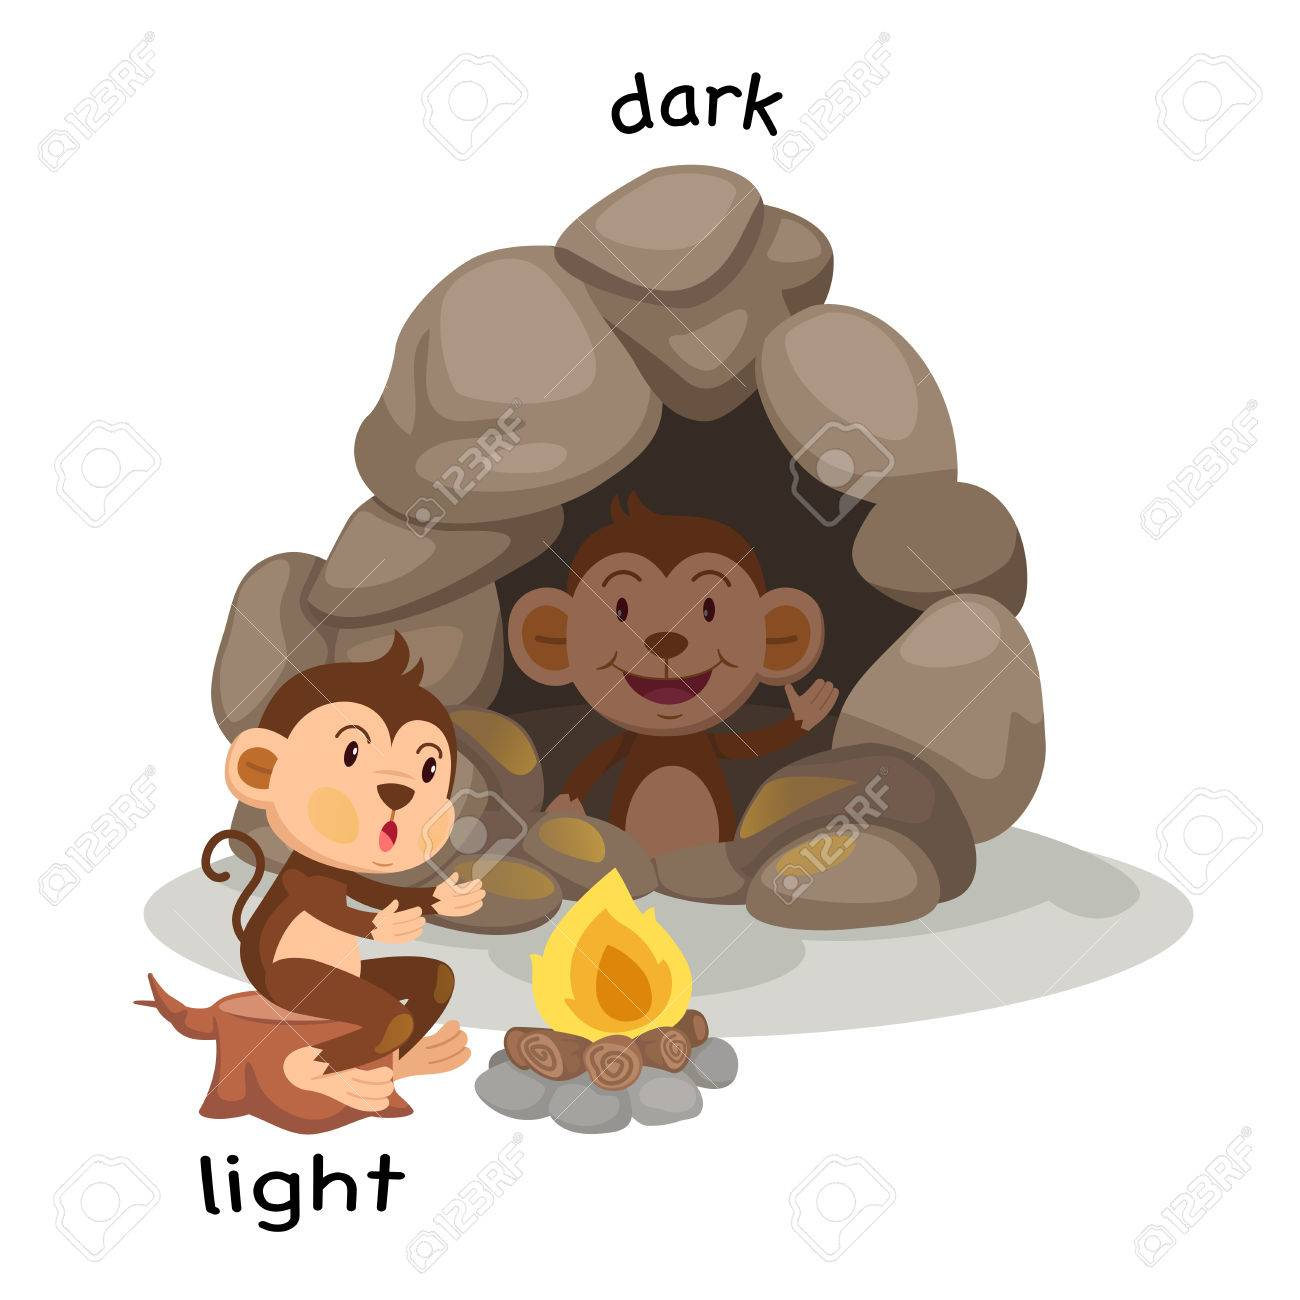 Opposite Light And Dark Vector Illustration Stock